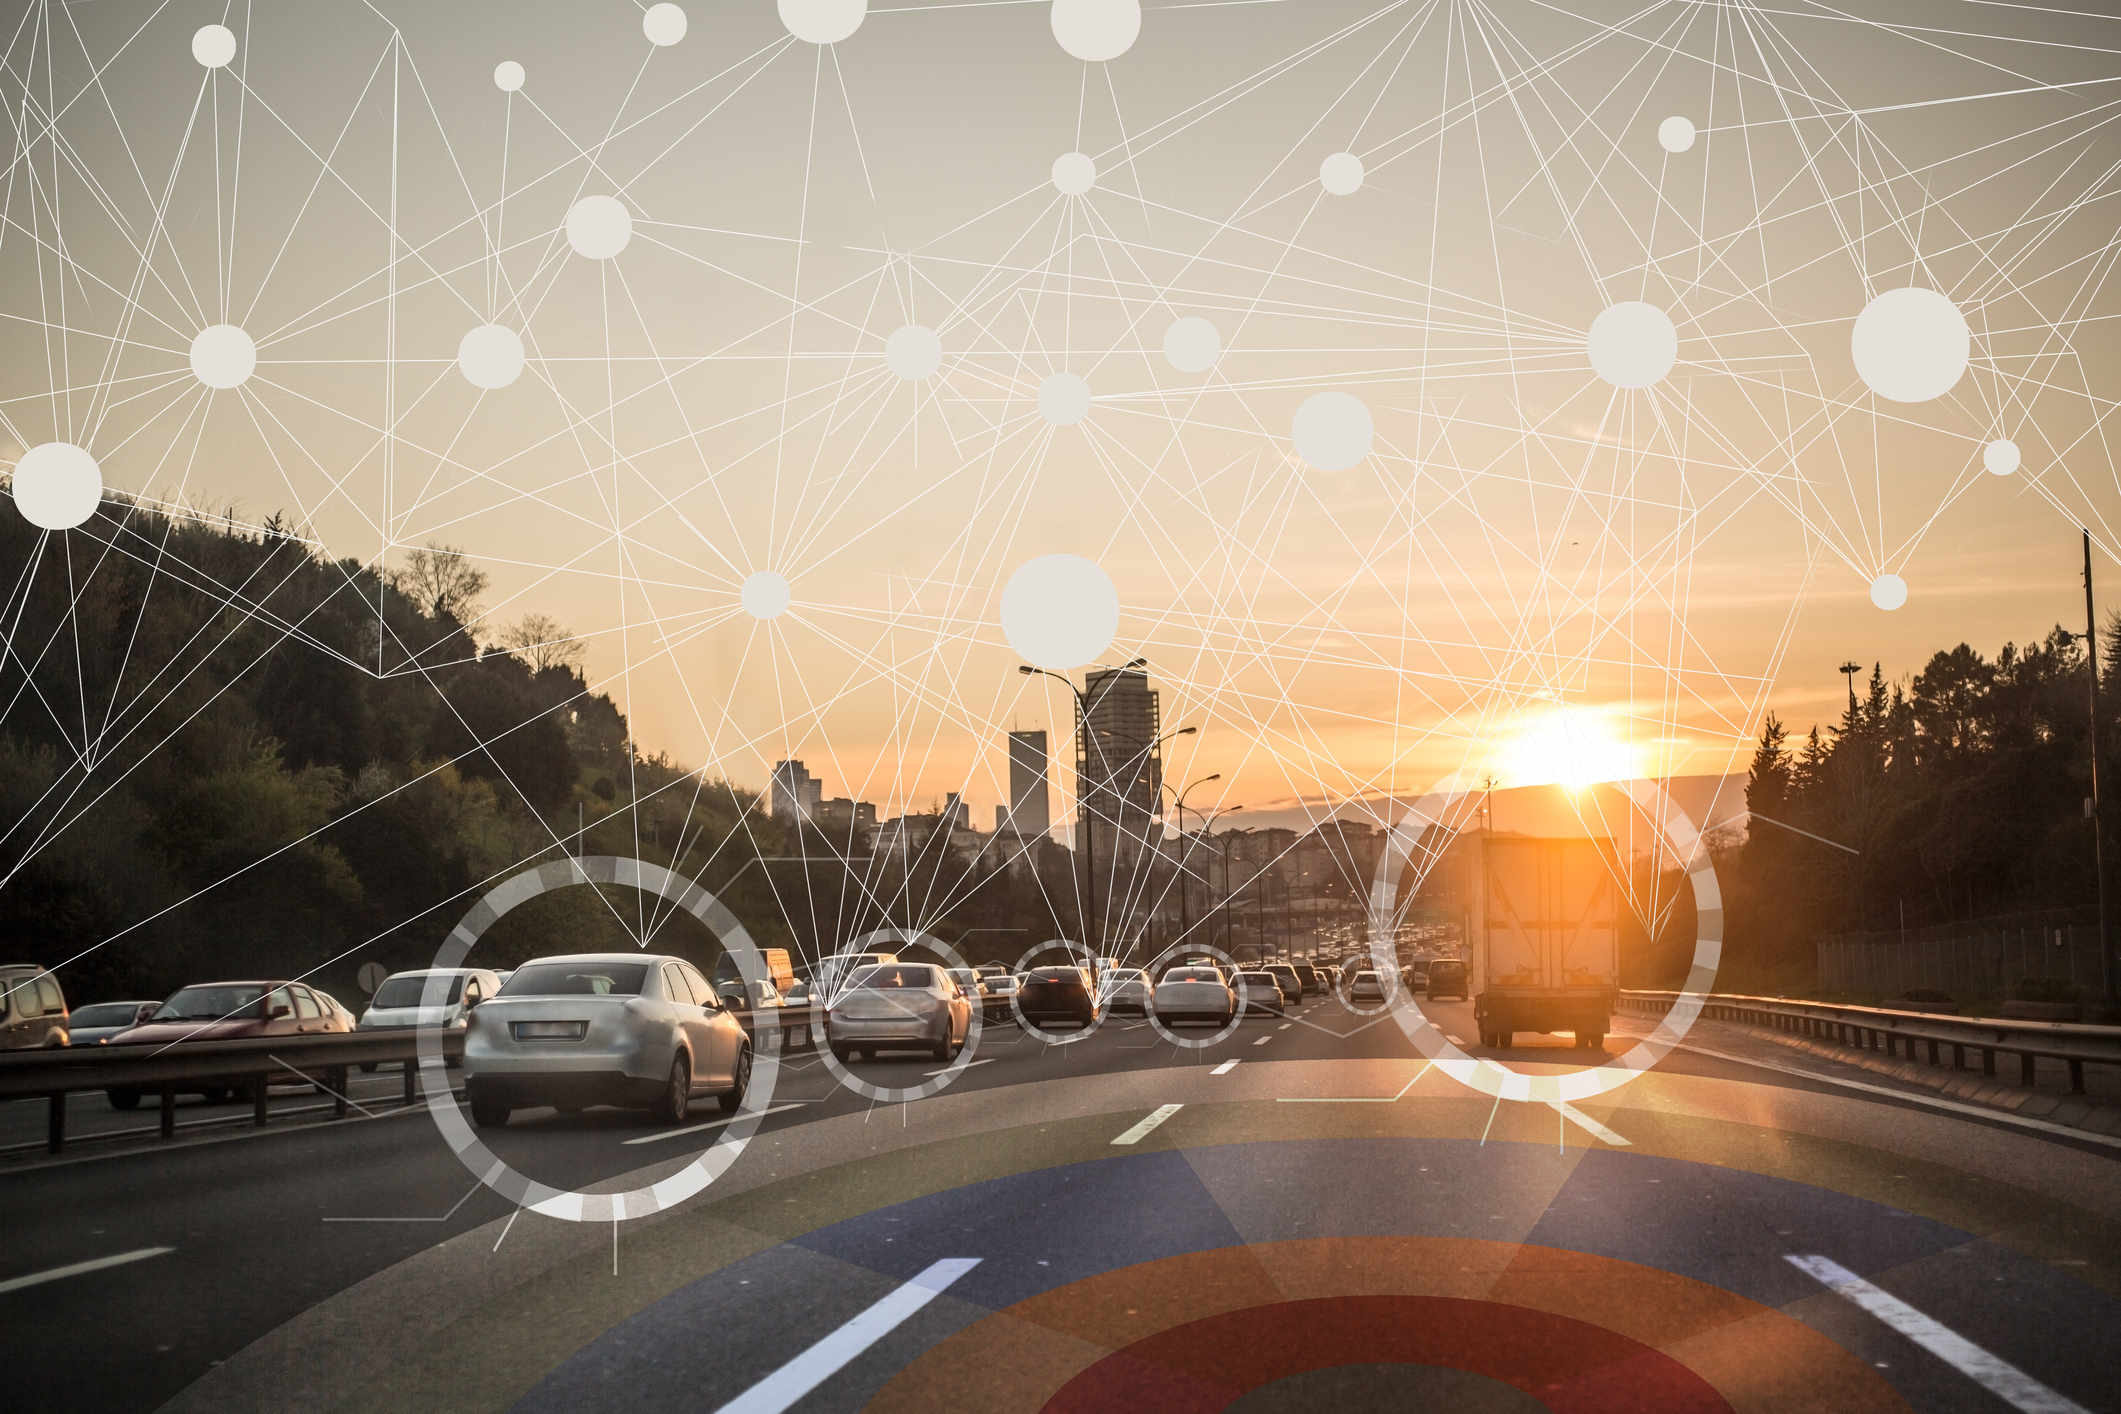 Looking at the Future of Transportation Industry